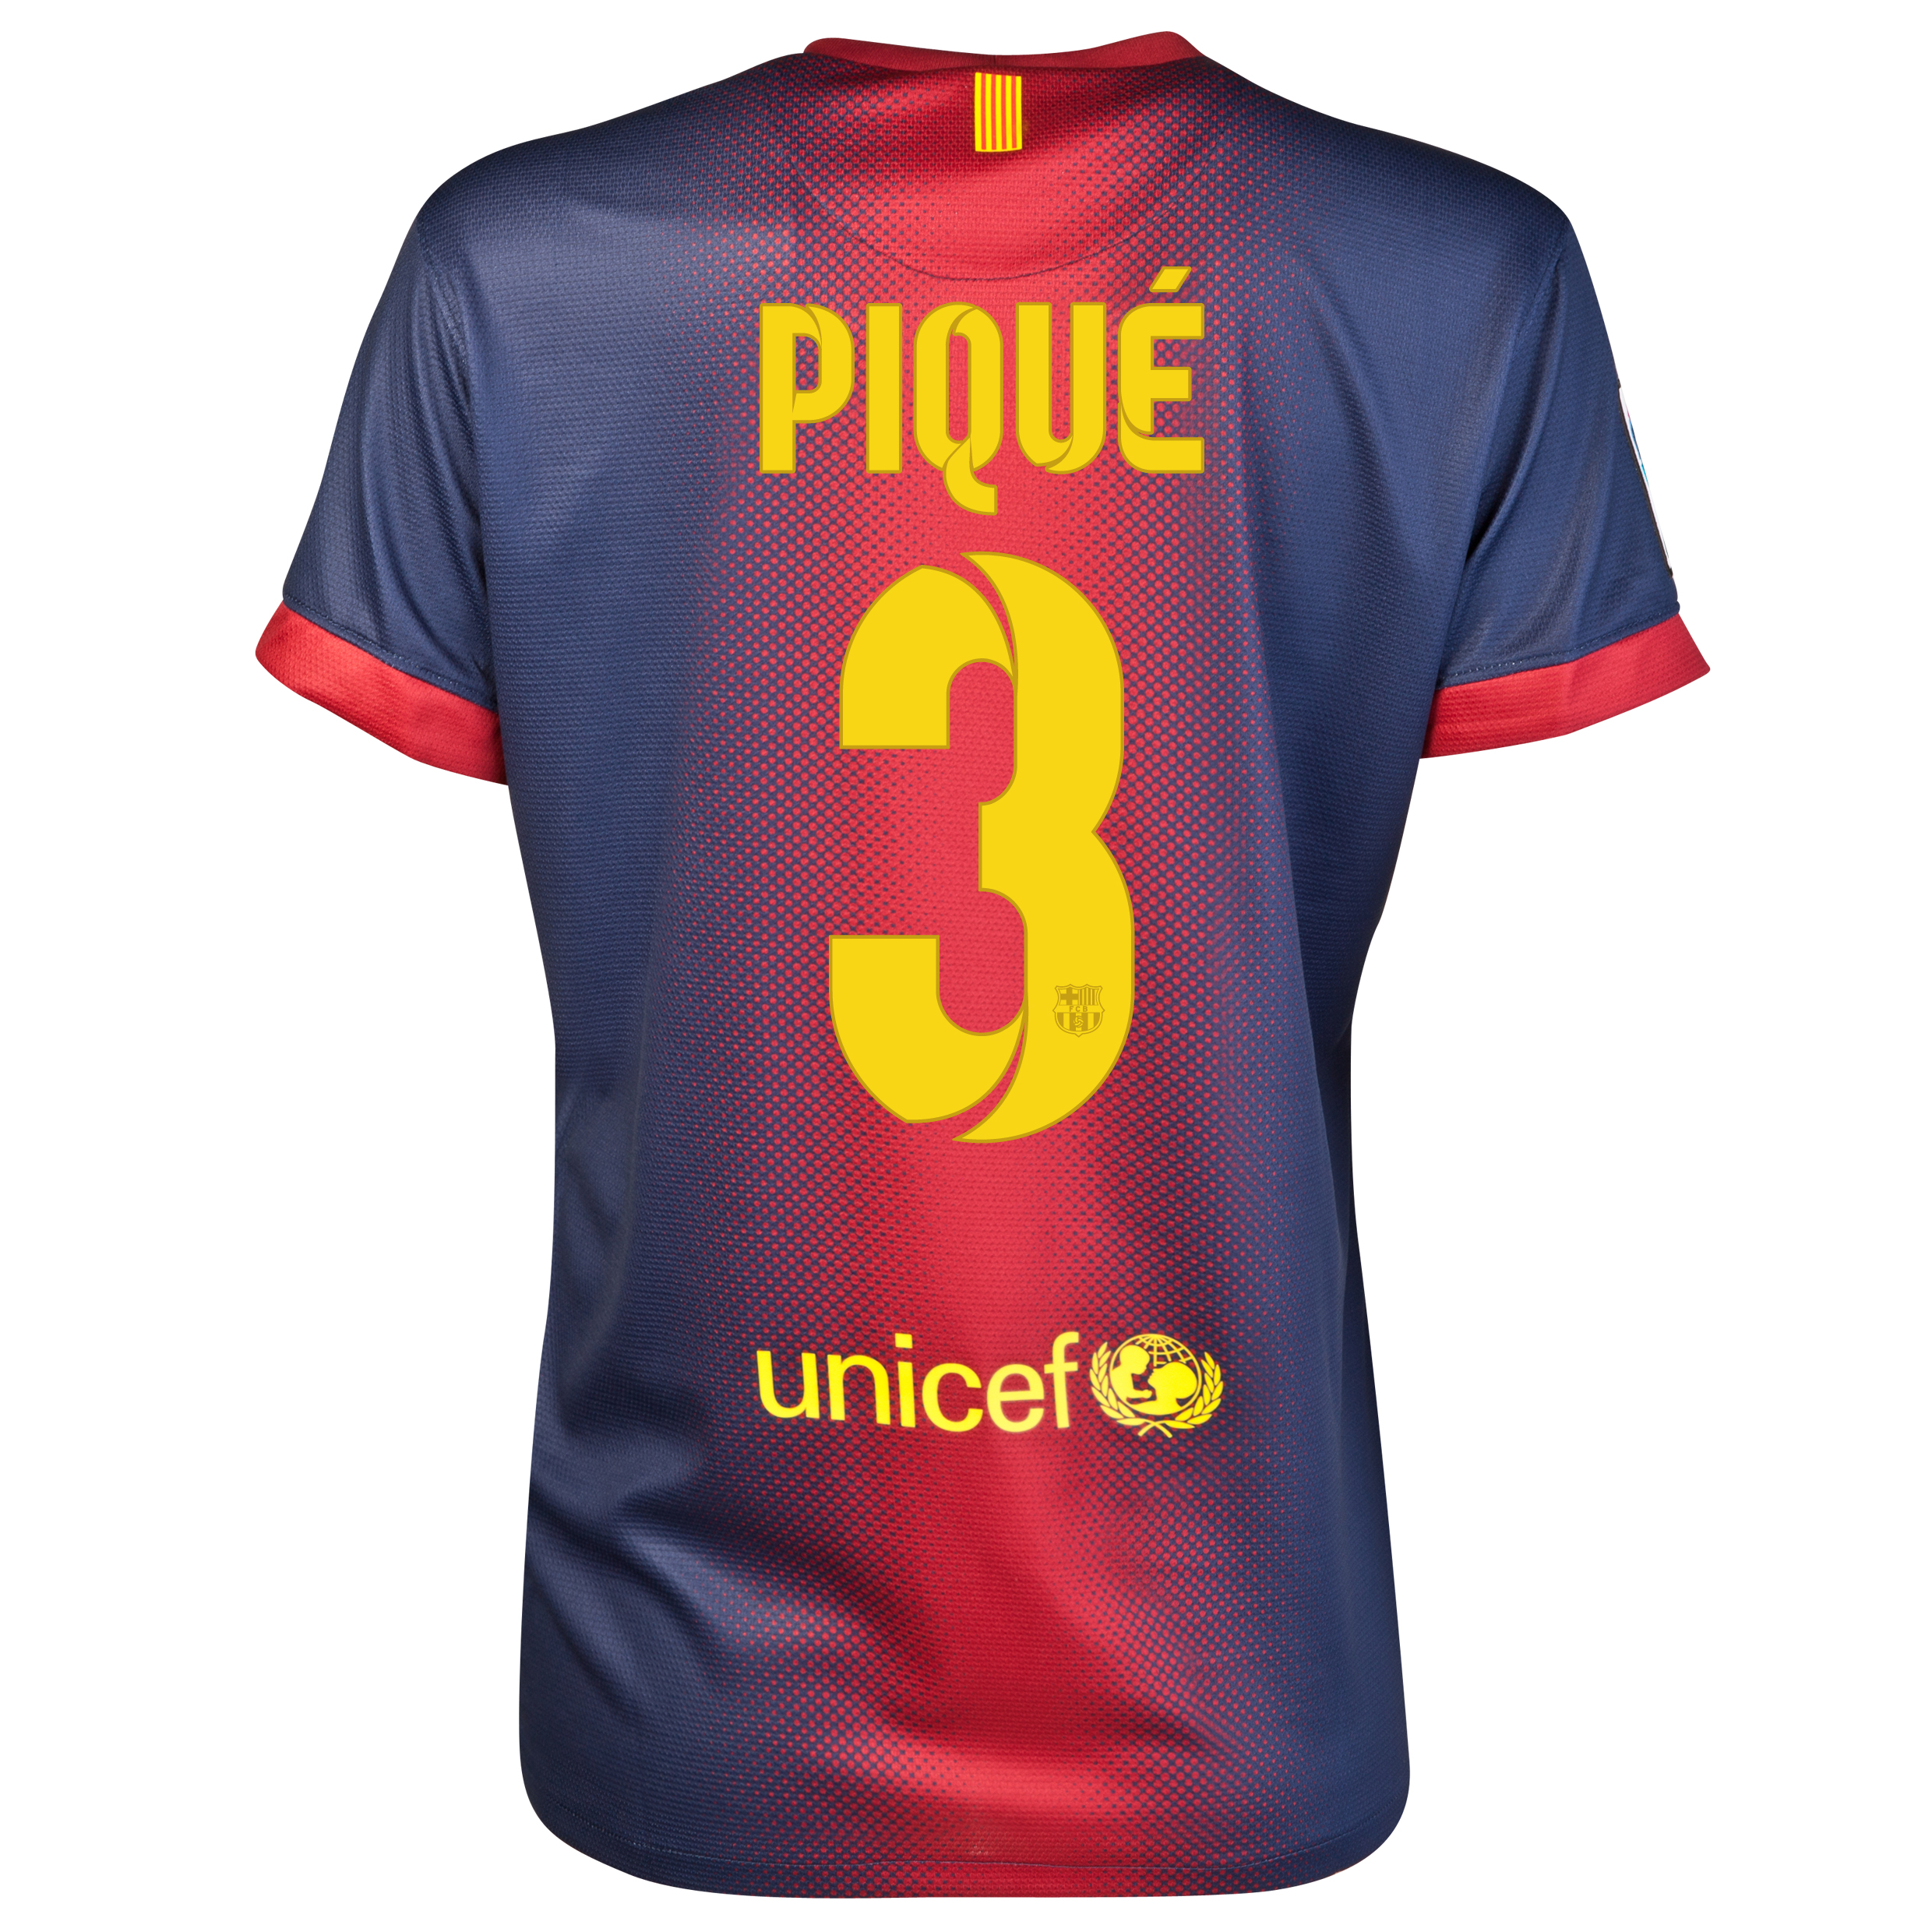 Barcelona Home Shirt 2012/13 - Womens with Pique 3 printing